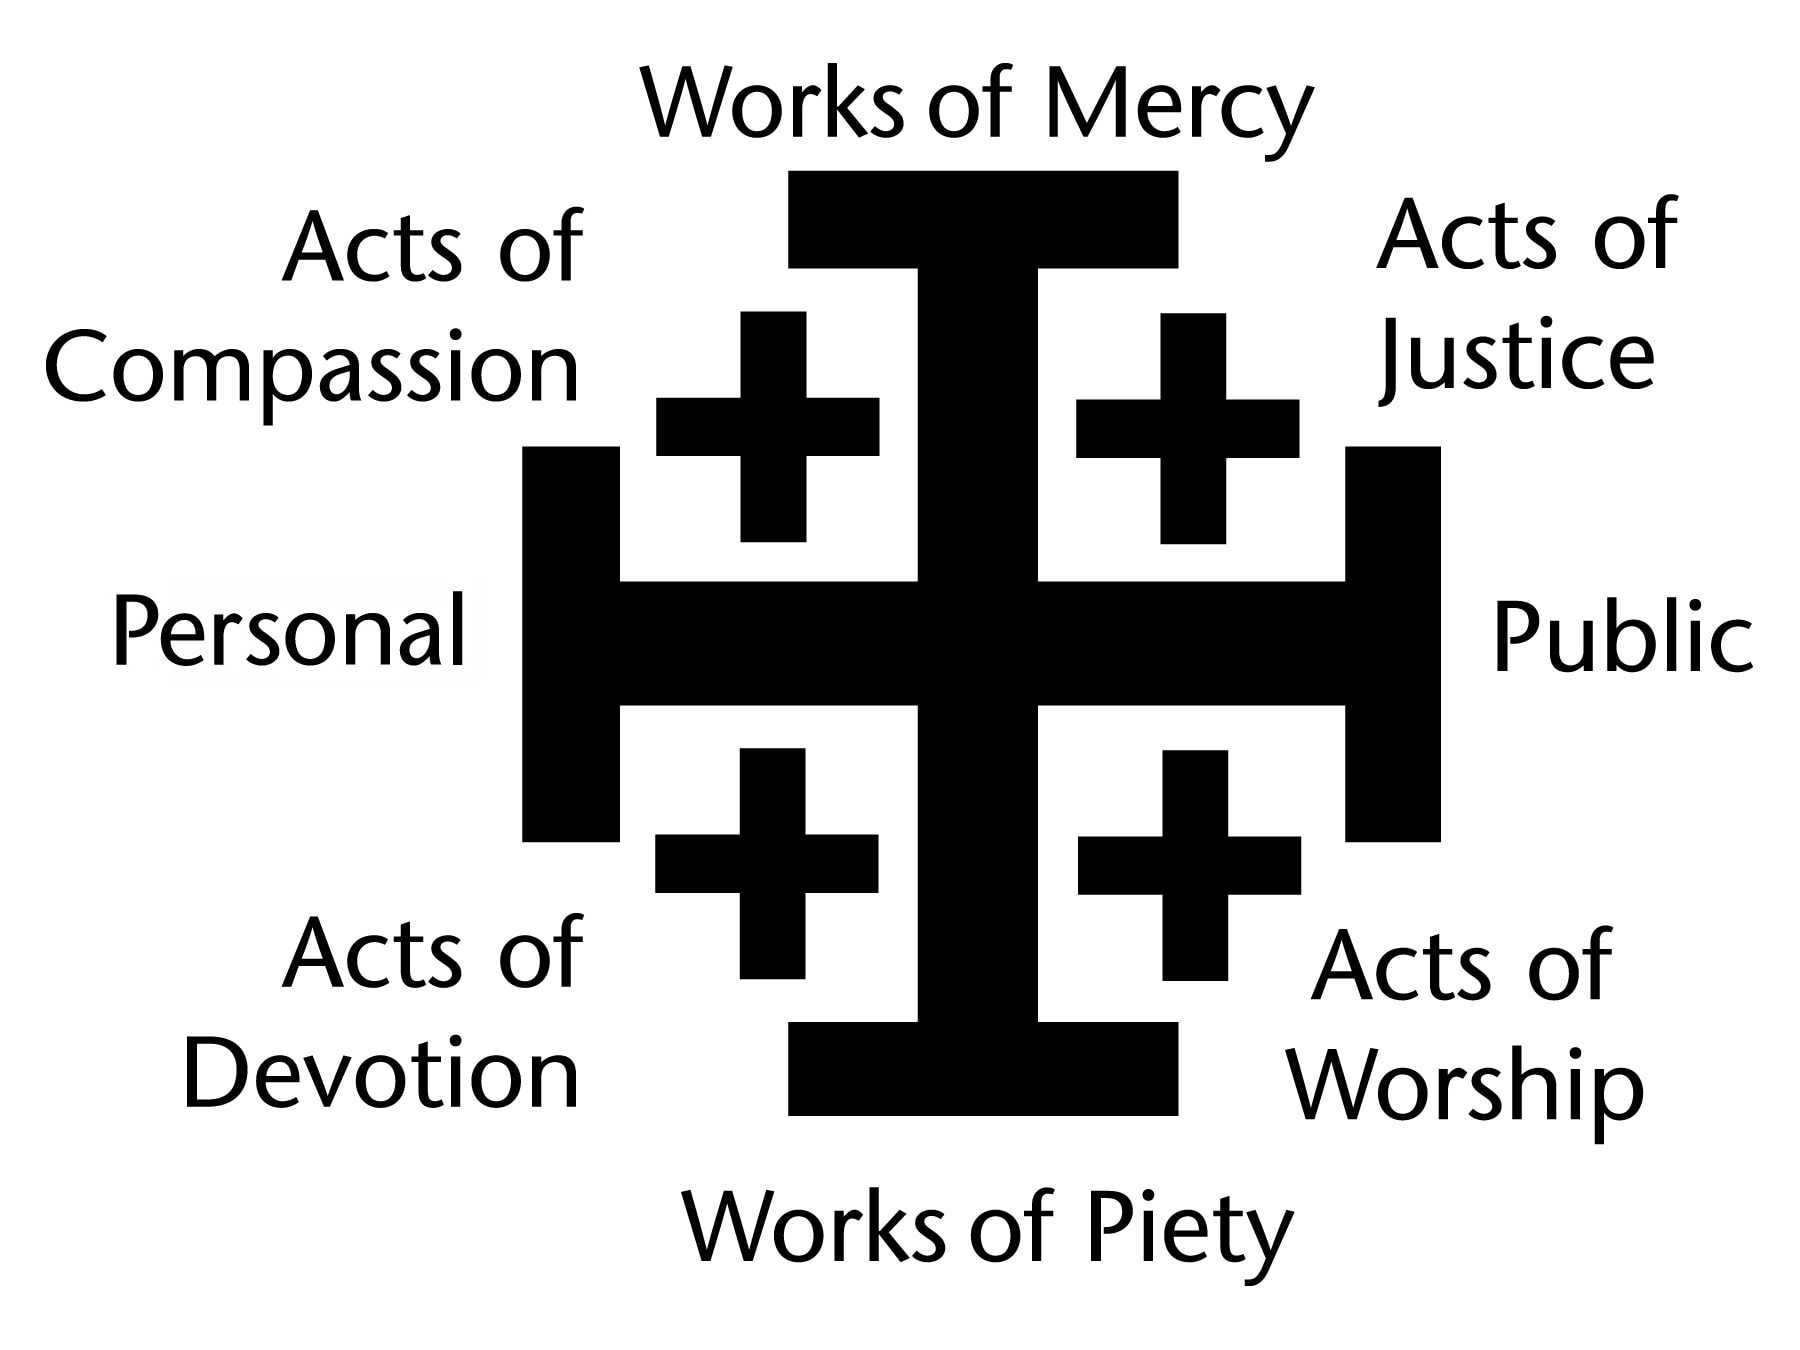 The General Rule of Discipleship is an adaptation of Wesley's General Rules. (The Book of Discipline of The United Methodist Church—2012, ¶ 1117.2)